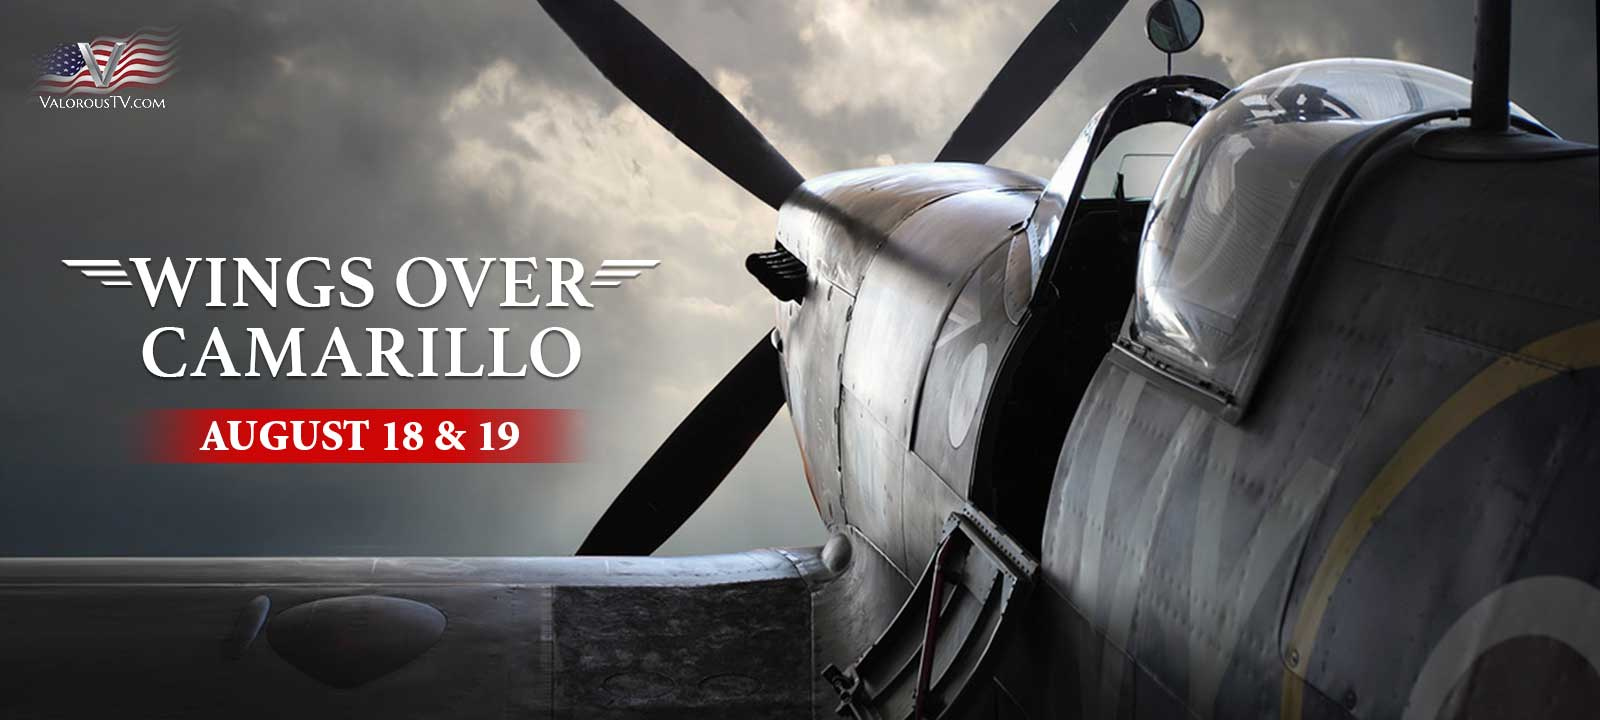 Valorous TV at Wings Over Camarillo Airshow 2018